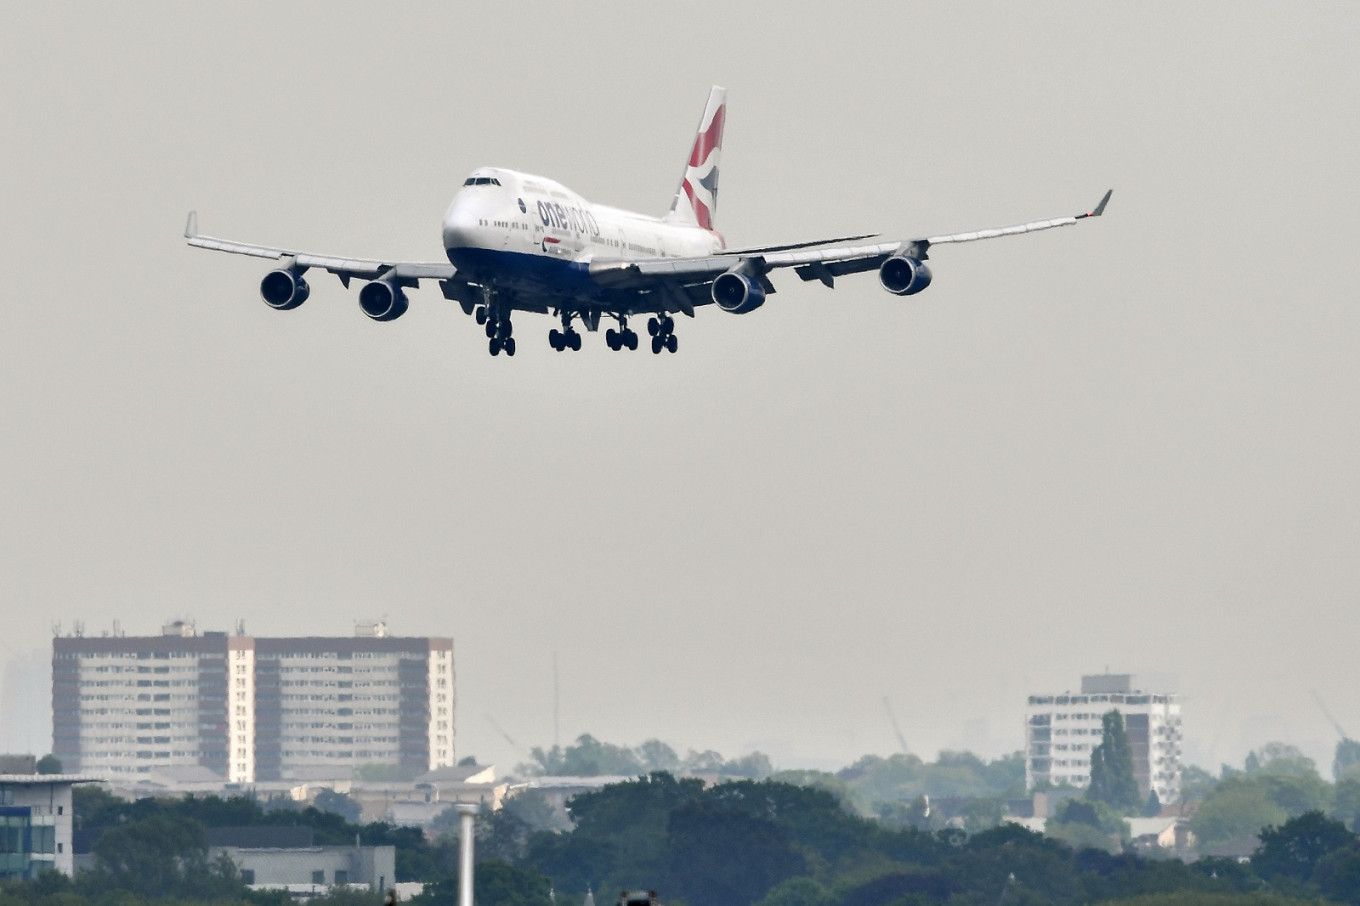 Boeing 747 and Airbus A380: End of the jumbos of the skies?